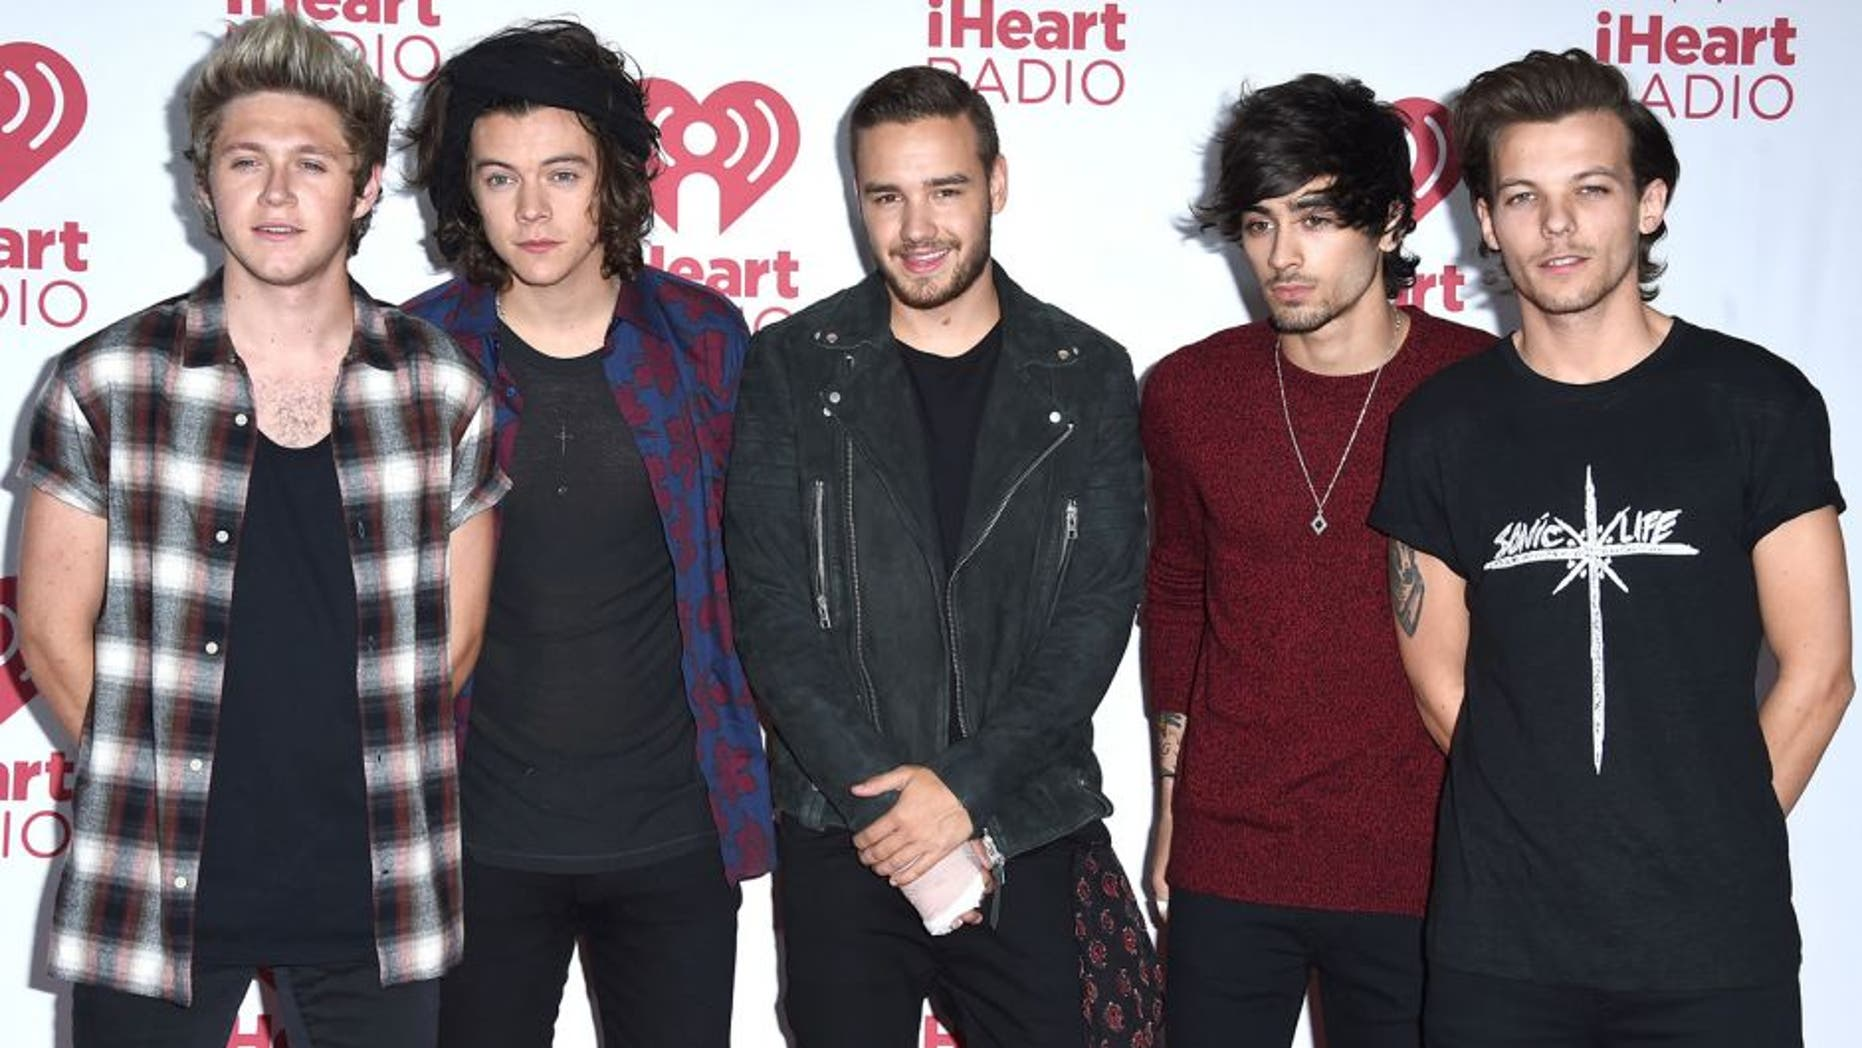 LAS VEGAS, NV - SEPTEMBER 20: One Direction pose in the 2014 iHeartRadio Music Festival - Night 2 - Press Room at MGM Grand Garden Arena on September 20, 2014 in Las Vegas, Nevada. (Photo by Steve Granitz/WireImage)